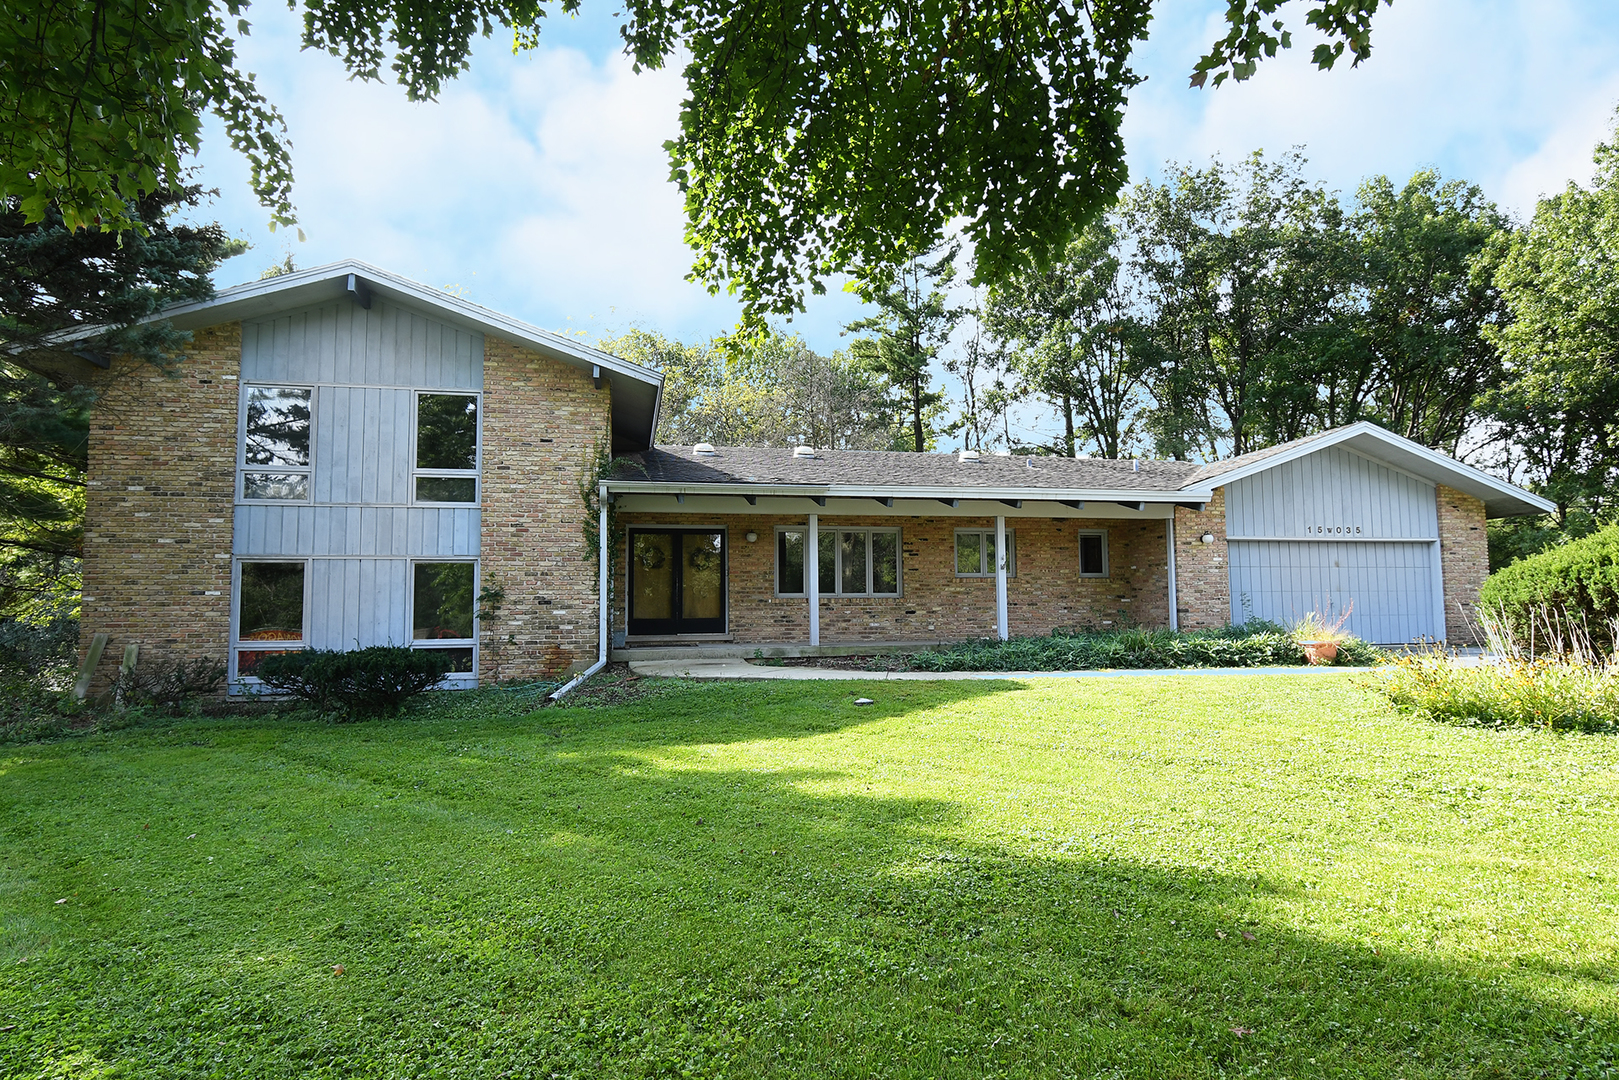 15W035 80TH Street, Burr Ridge IL 60527